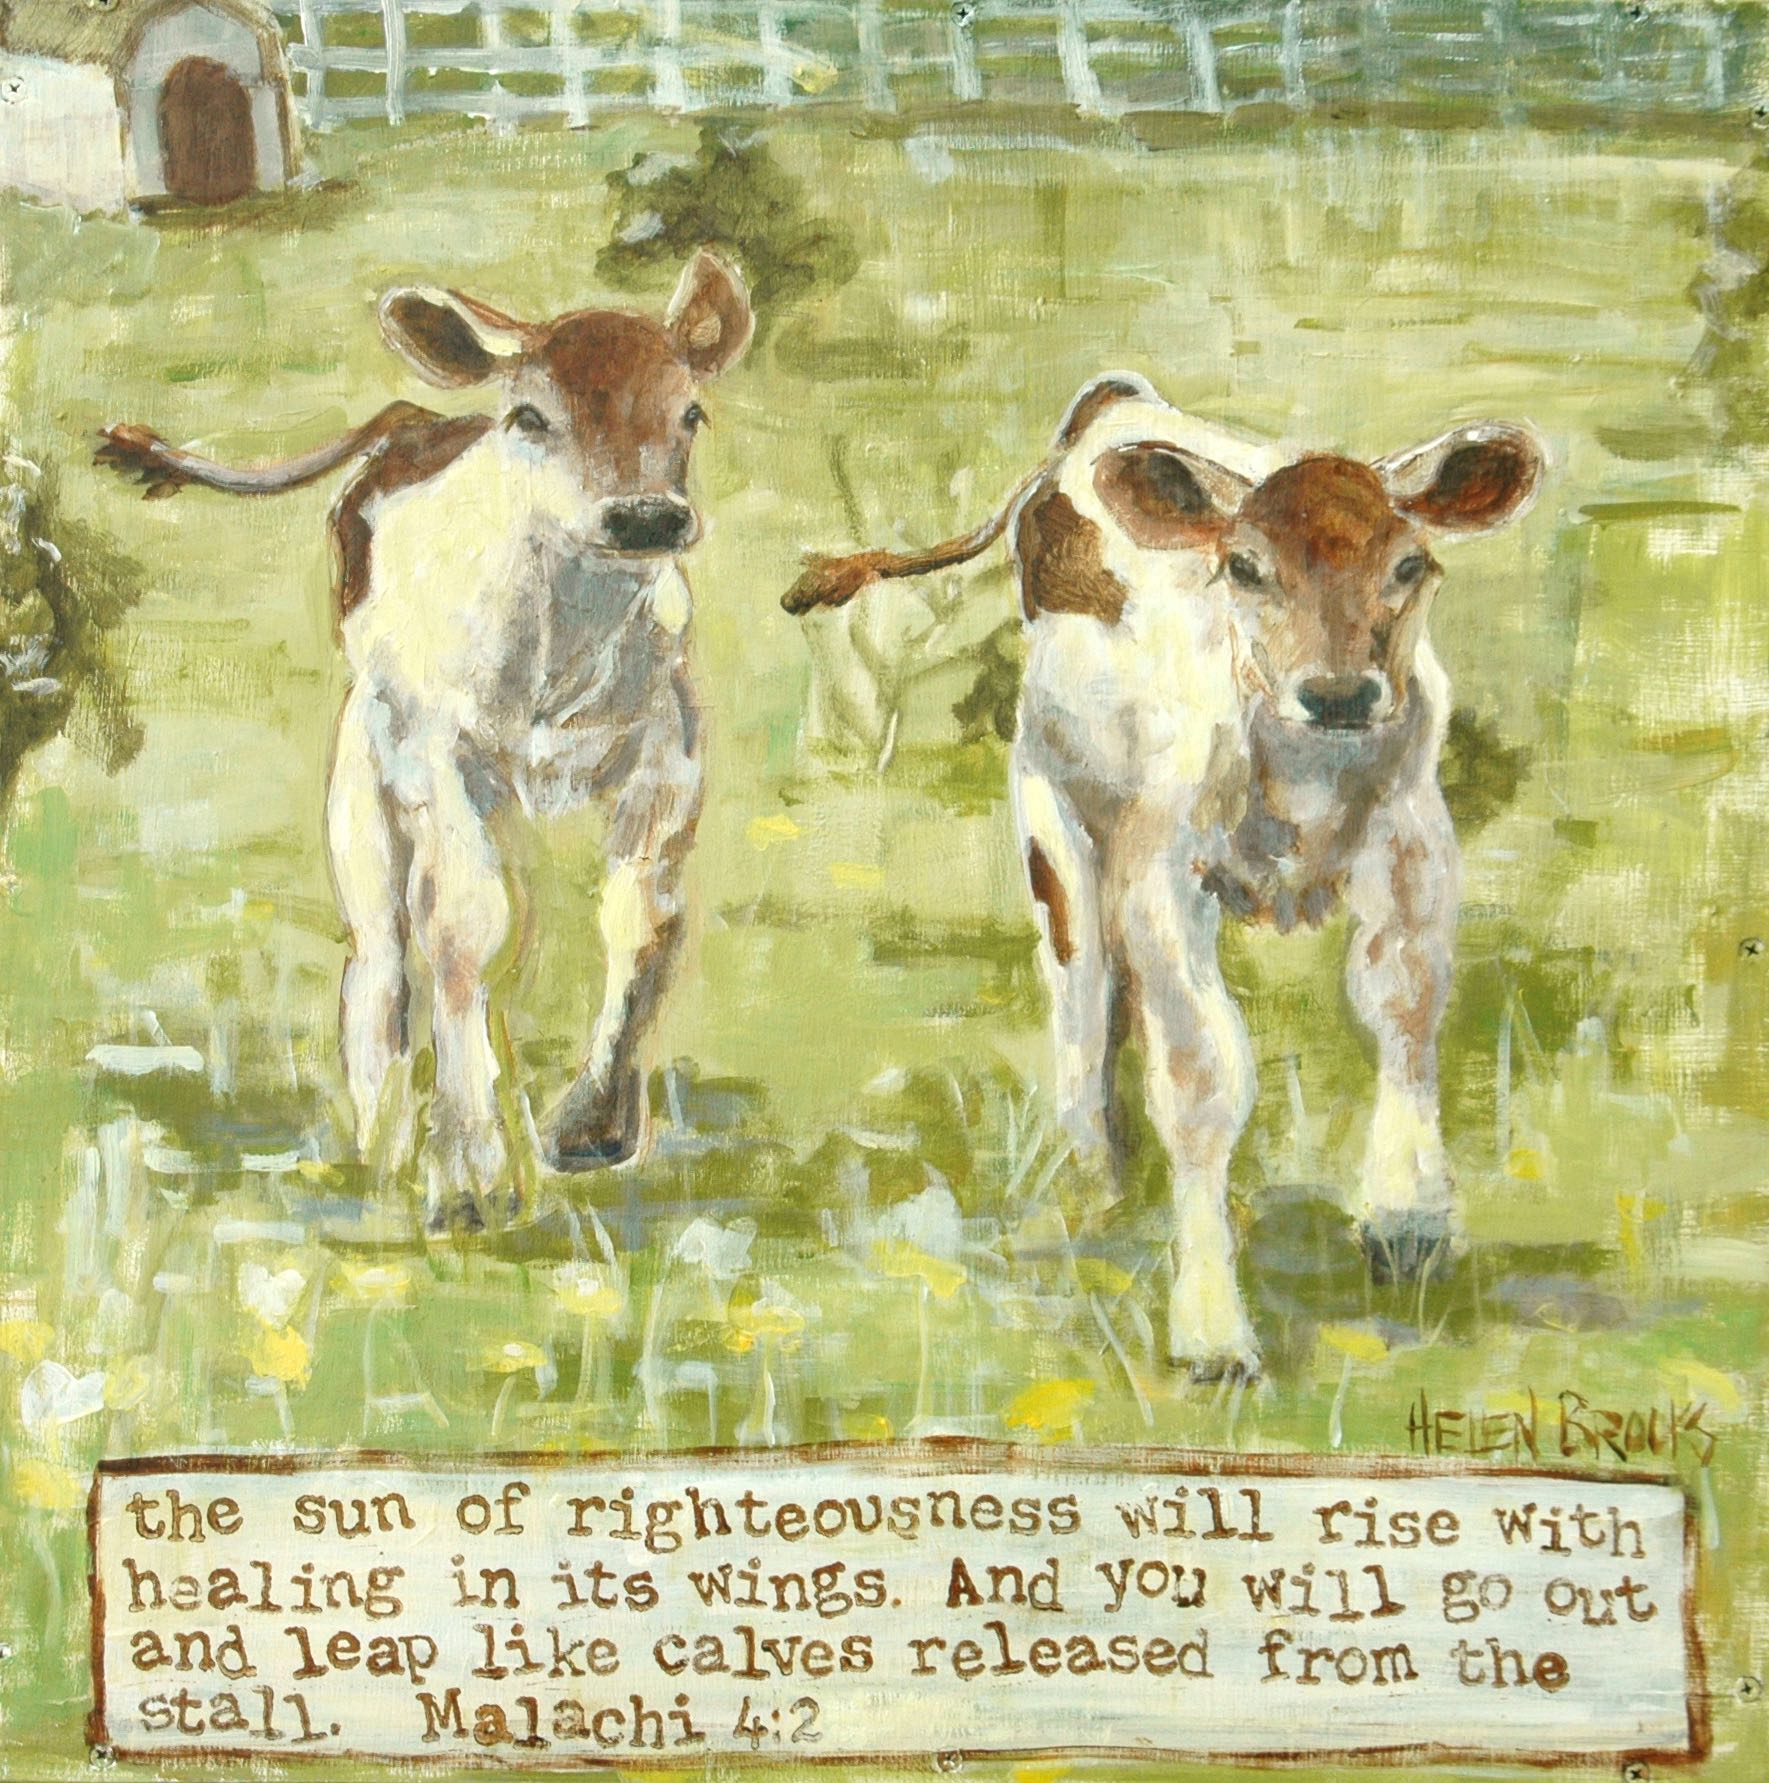 healing-calves-pasture-painting-mixed+media-chirstian+art